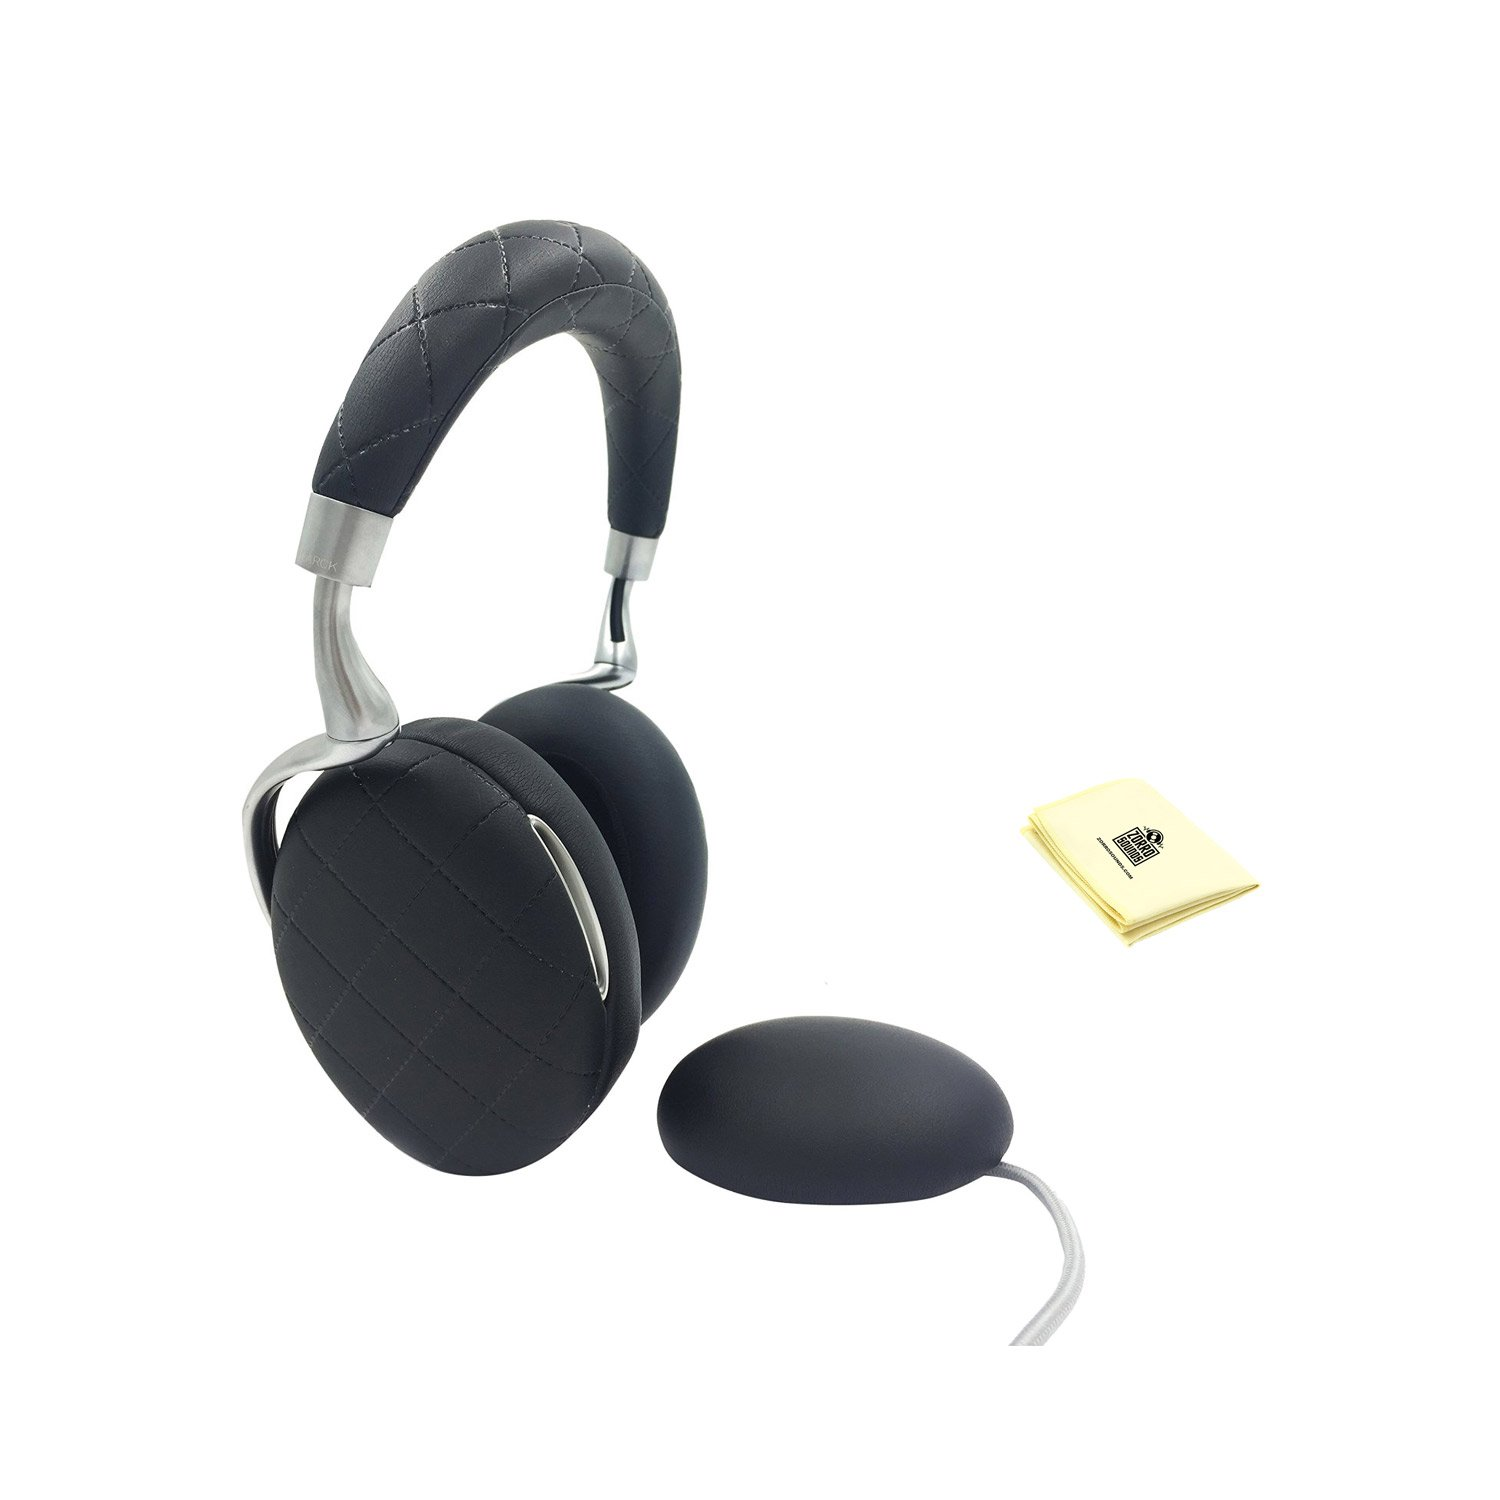 Parrot Zik 3 Wireless Stereo Headphones (includes a wireless charger) With Custom Designed Instrument Cloth (Black Overstitched)